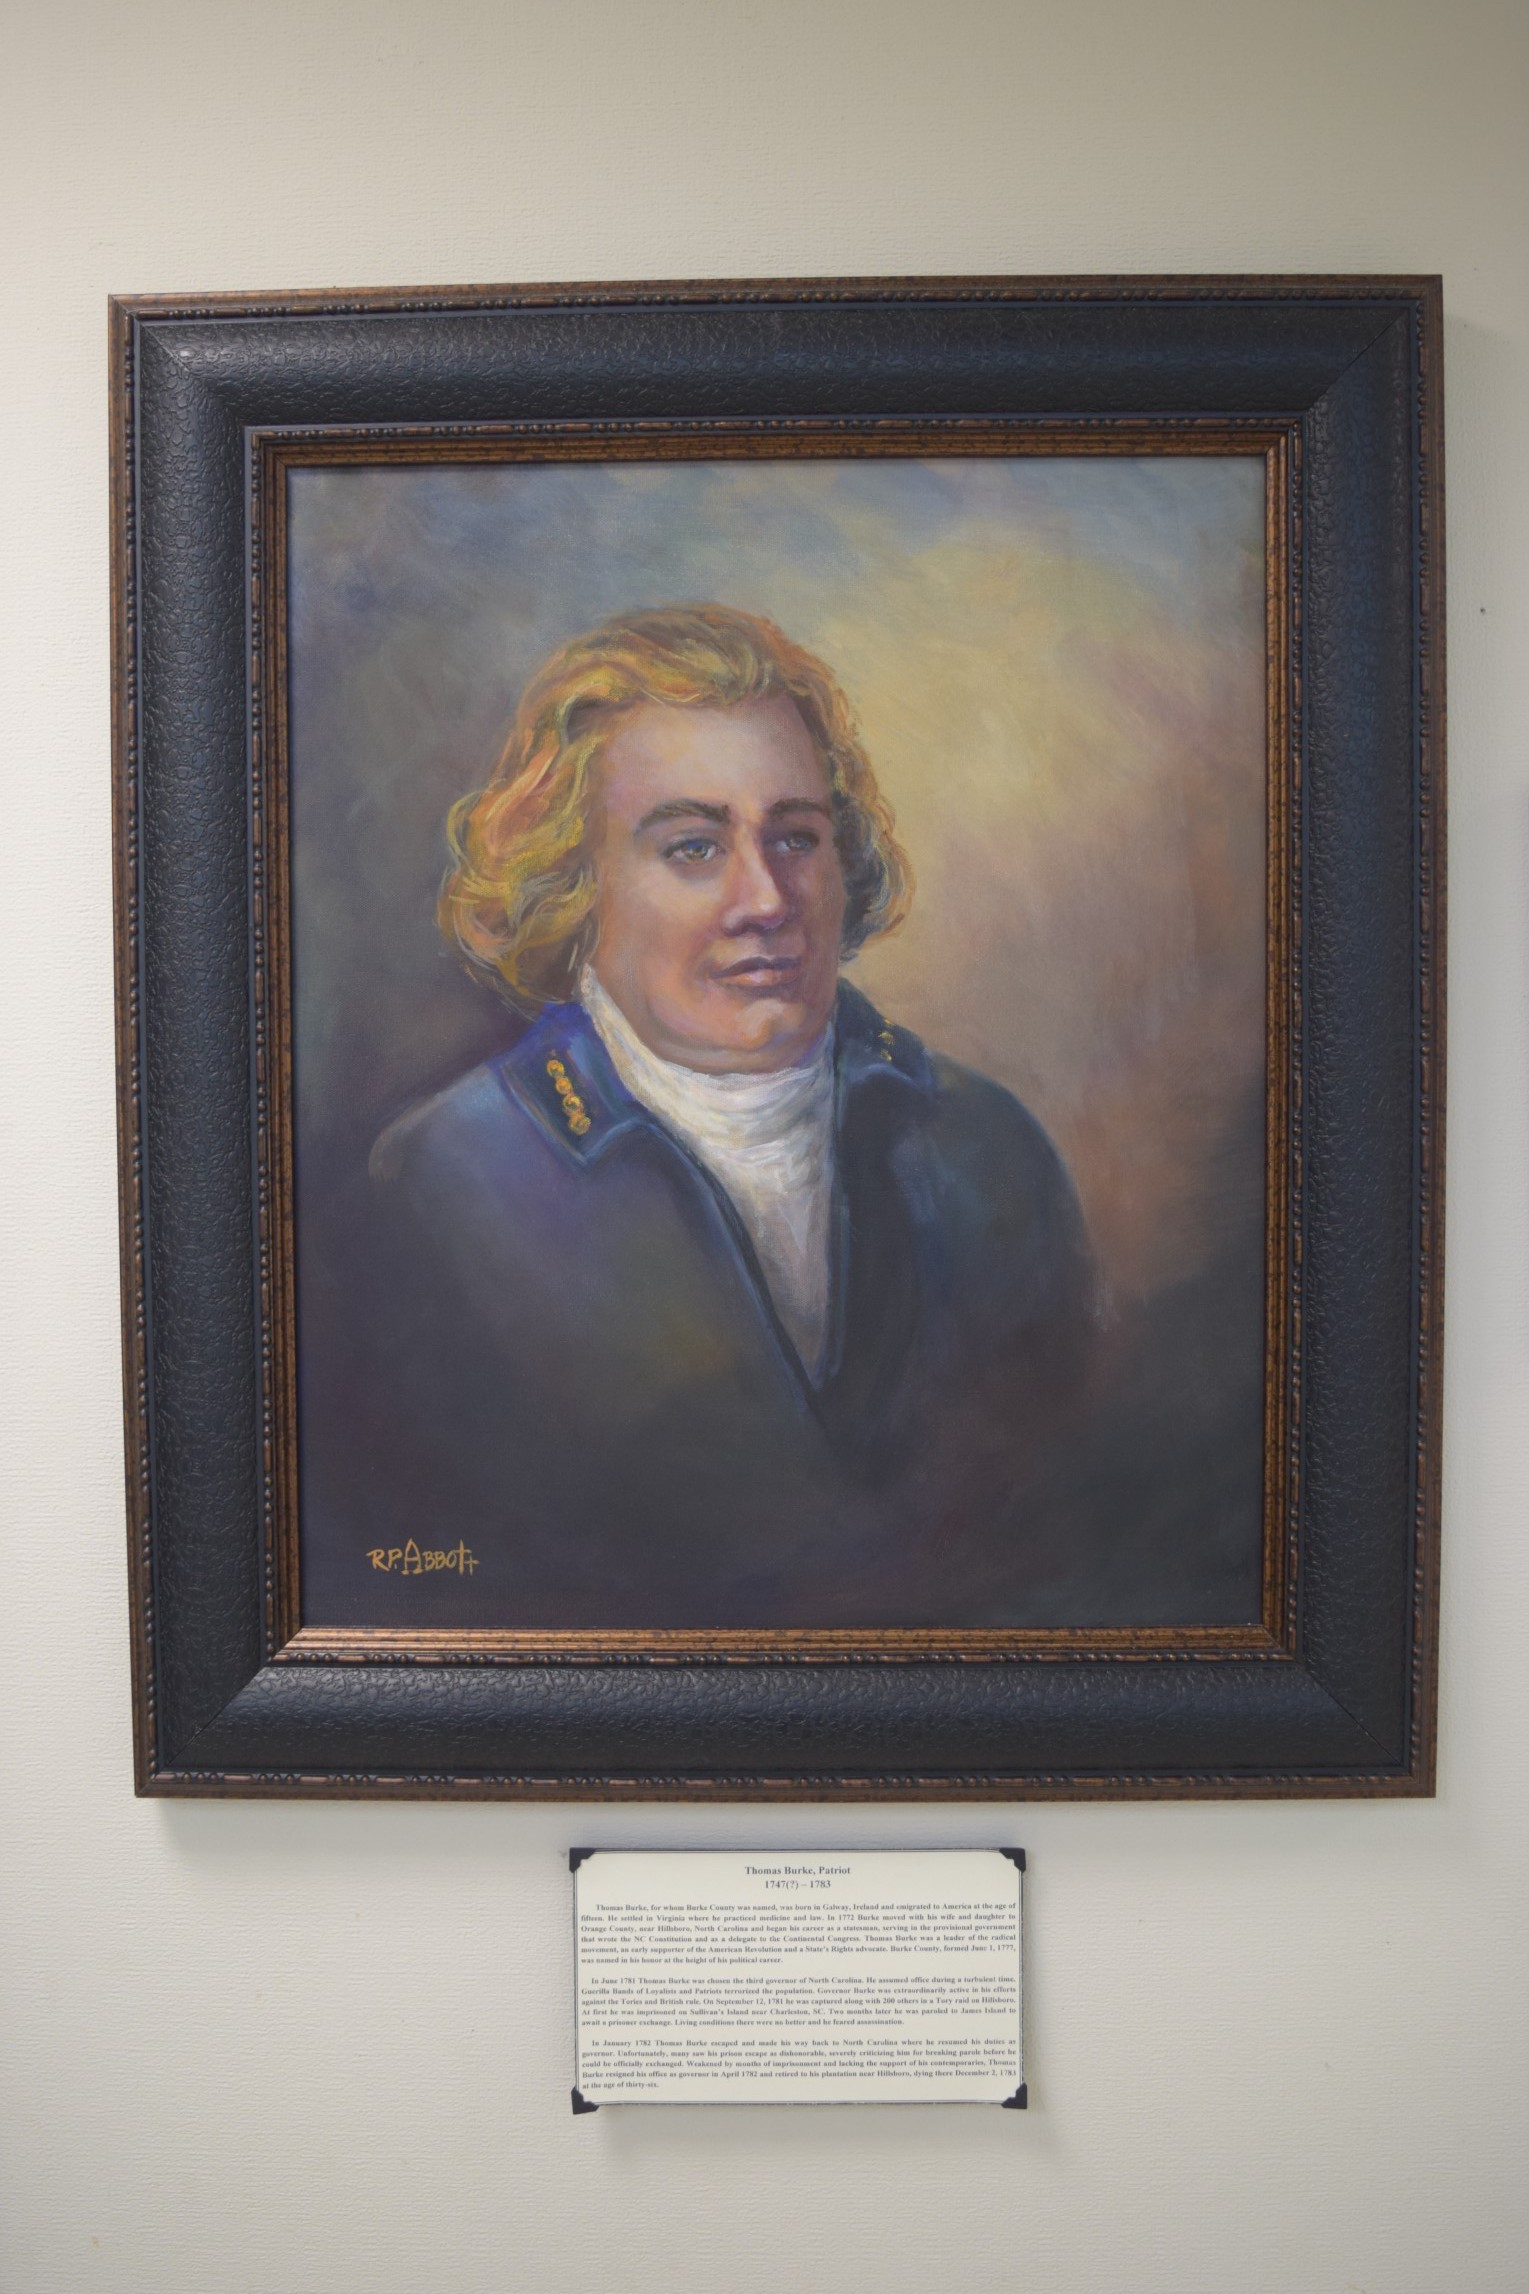 Painting of Thomas Burke, whom Burke County is named after, that hangs in the History Museum of Burke County lobby.